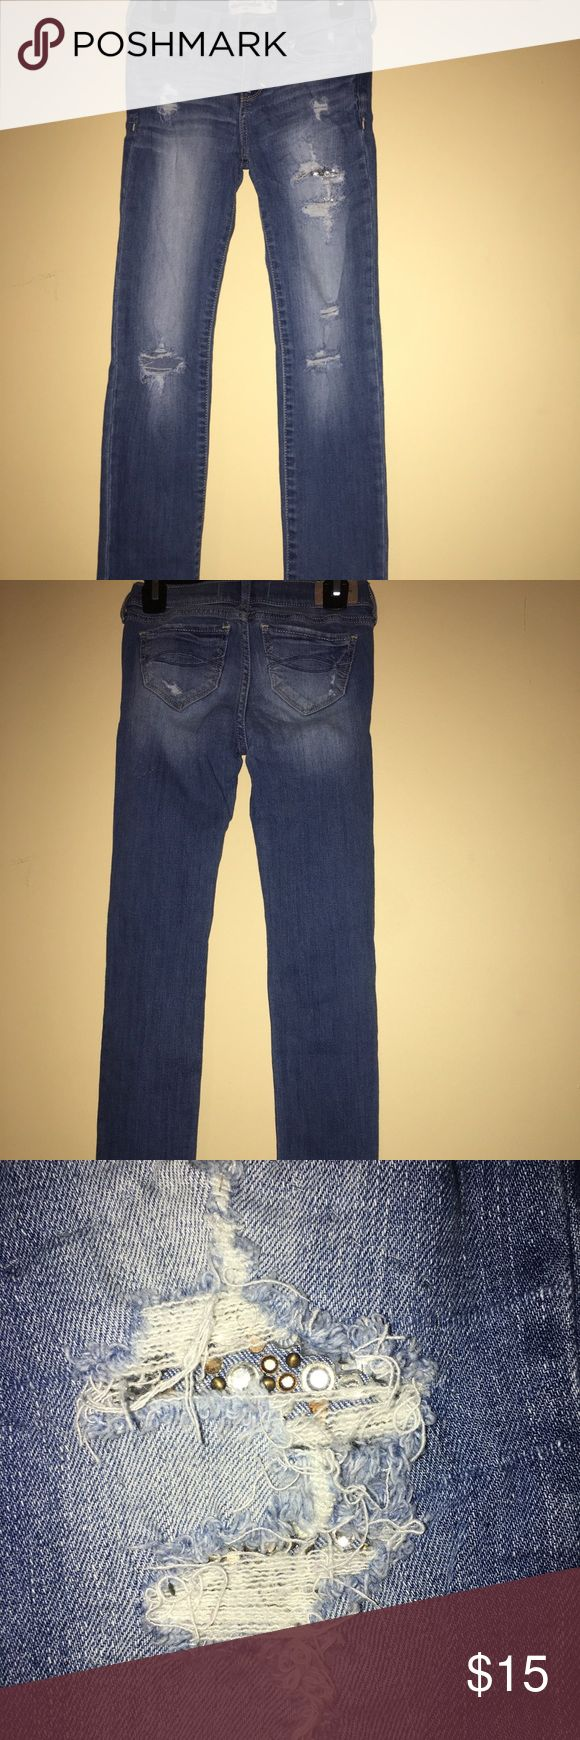 Abercrombie Girls distressed denim Girls jeans distressed denim with jewel detail shown on picture very cute jeans‼️ Abercombie Kids Bottoms Jeans